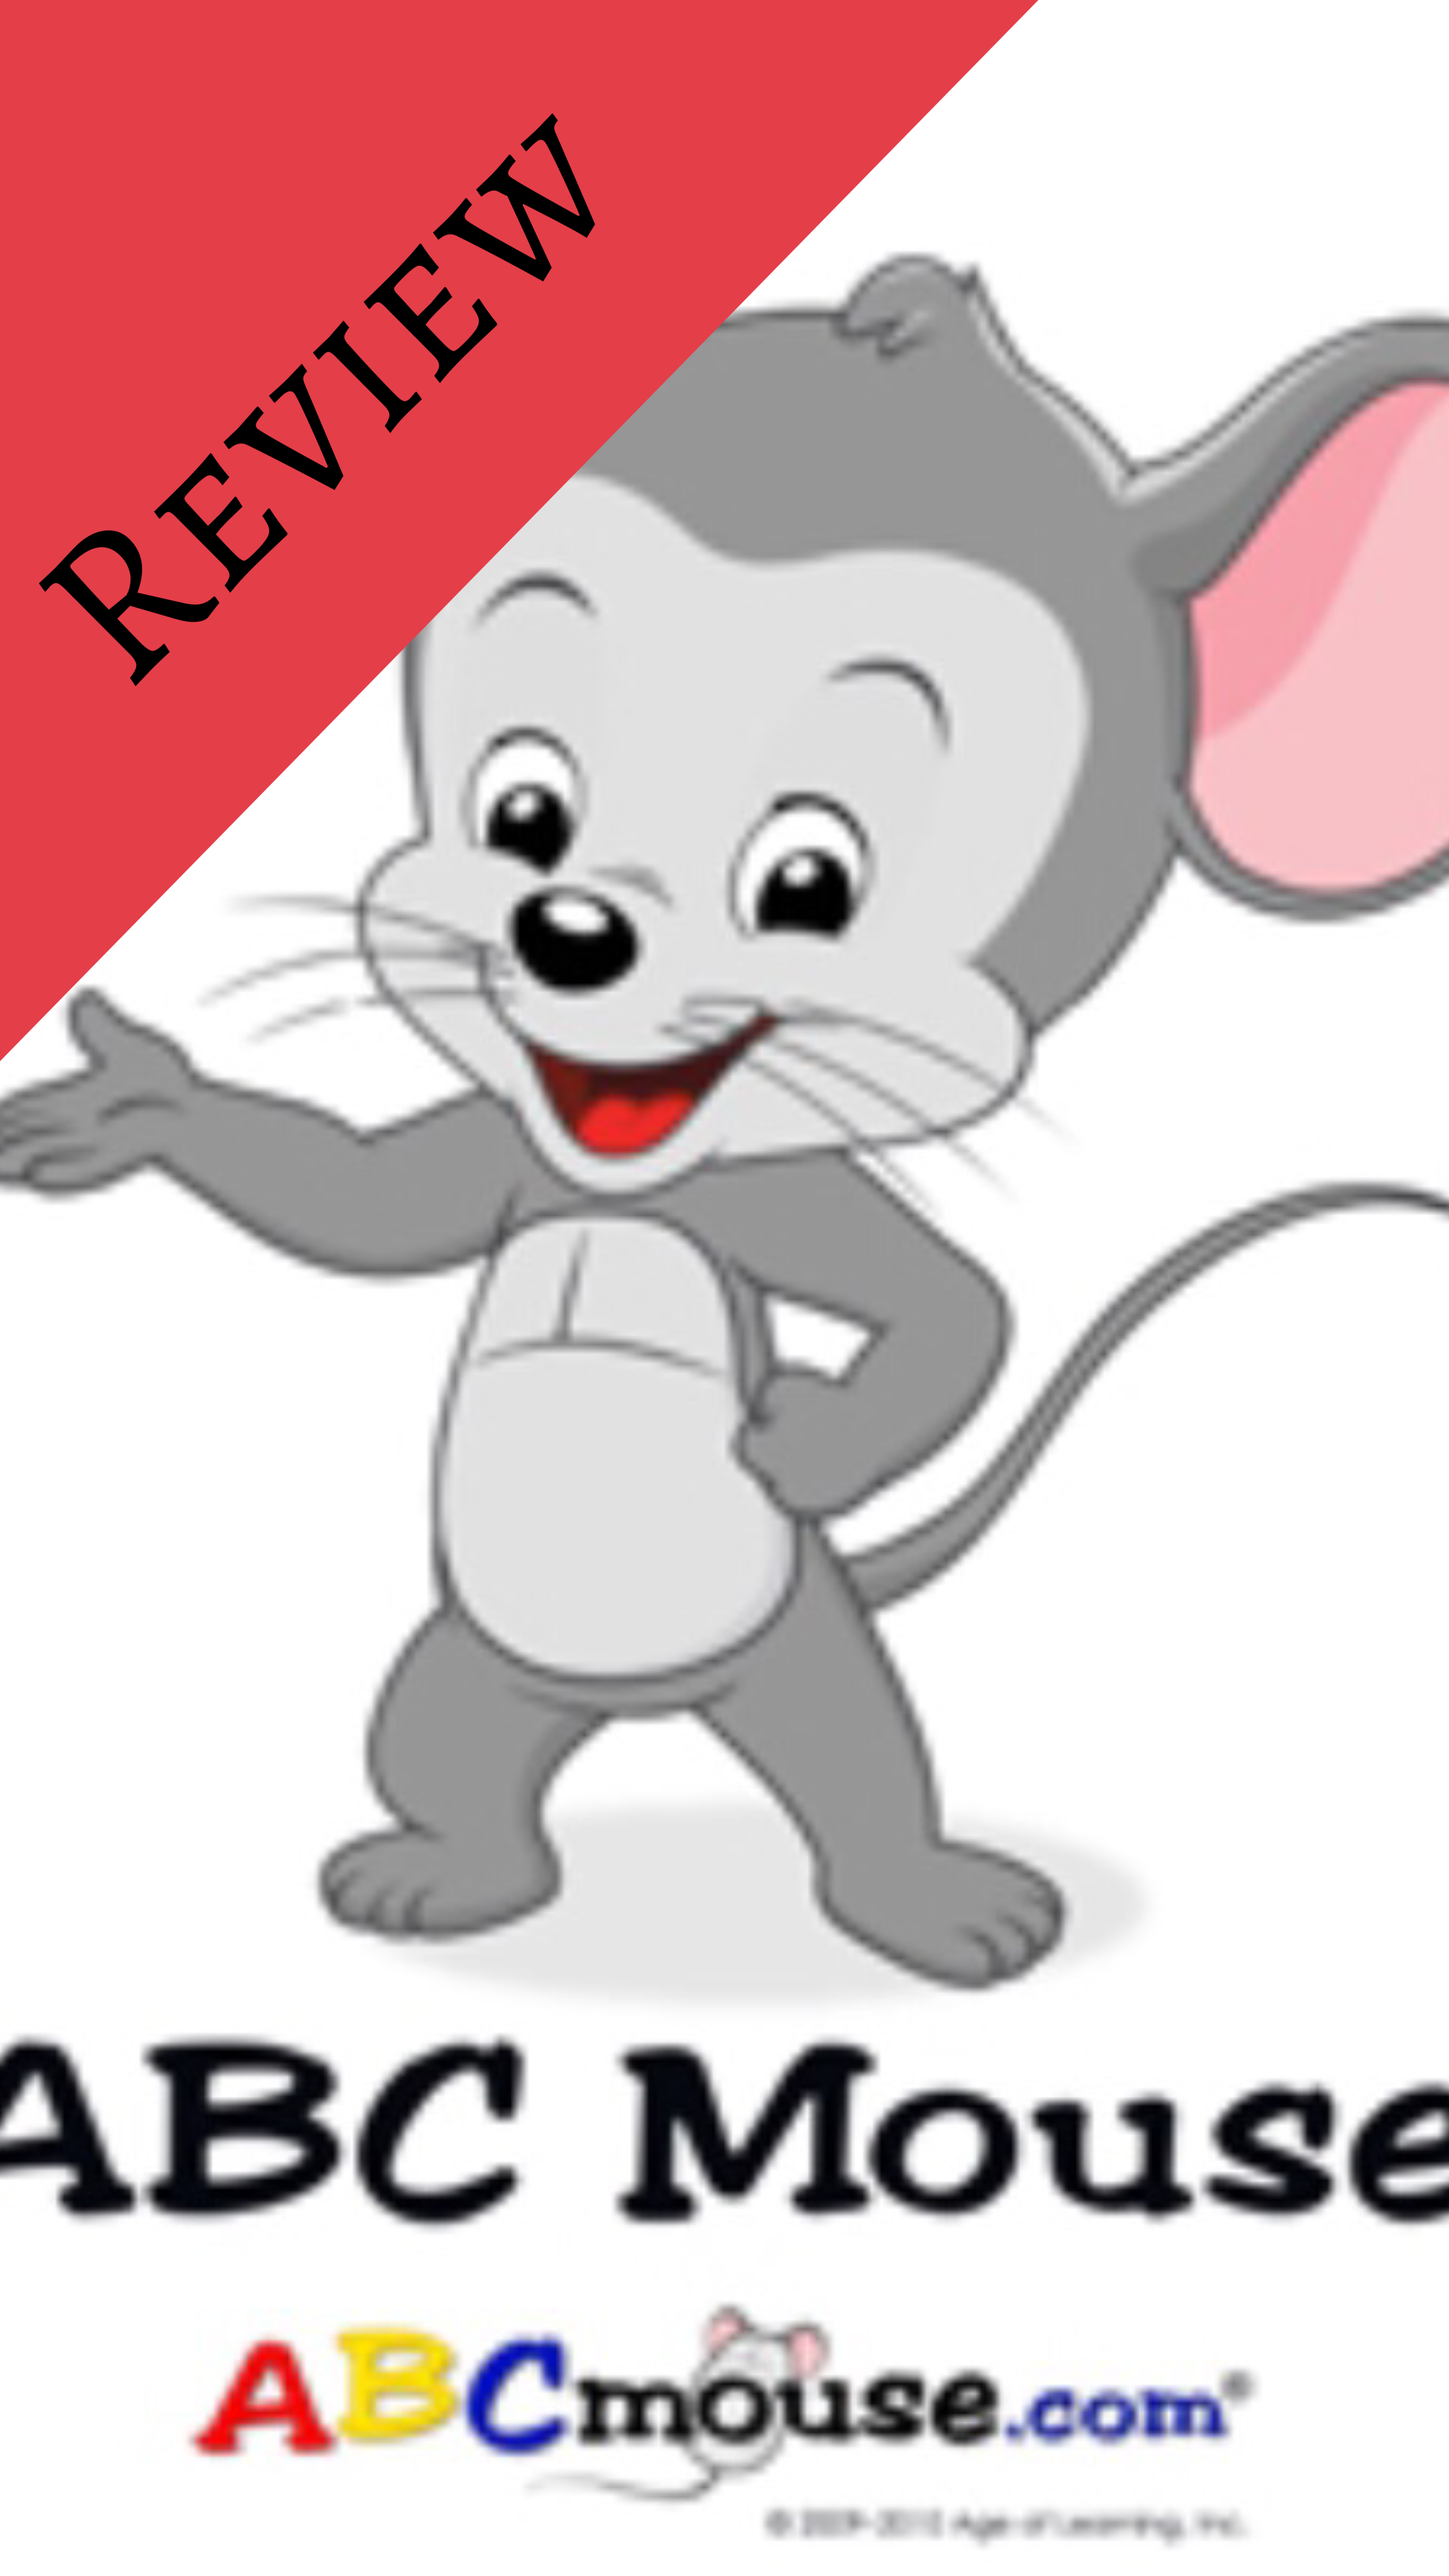 Review Abc mouse, Kids learning activities